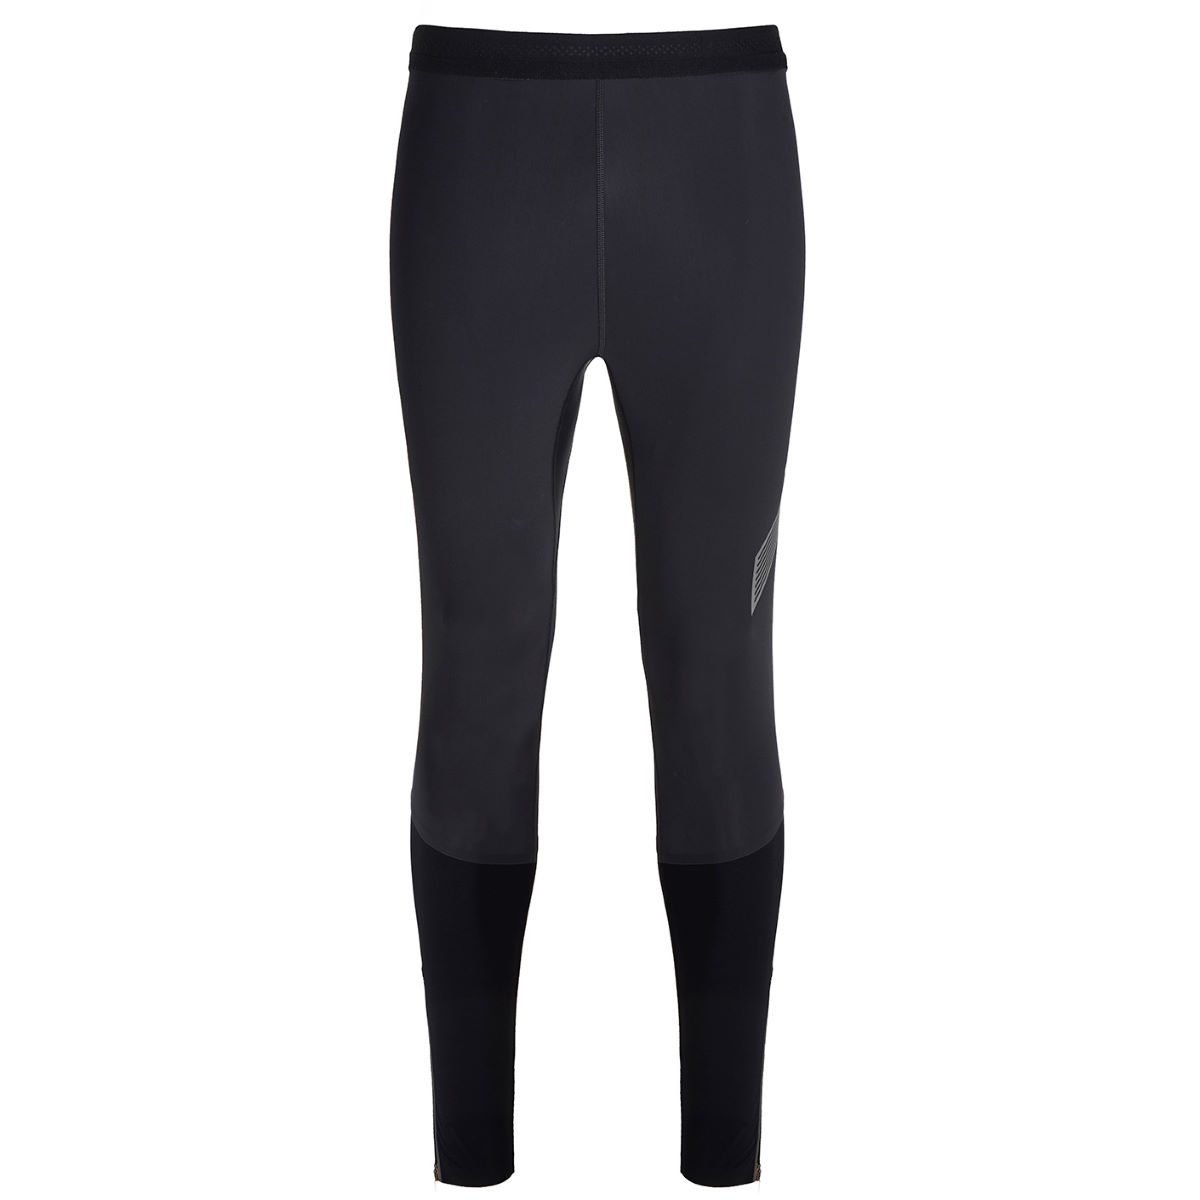 Soar Running Dual Fabric Tights 2.0 - Mallas de compresión